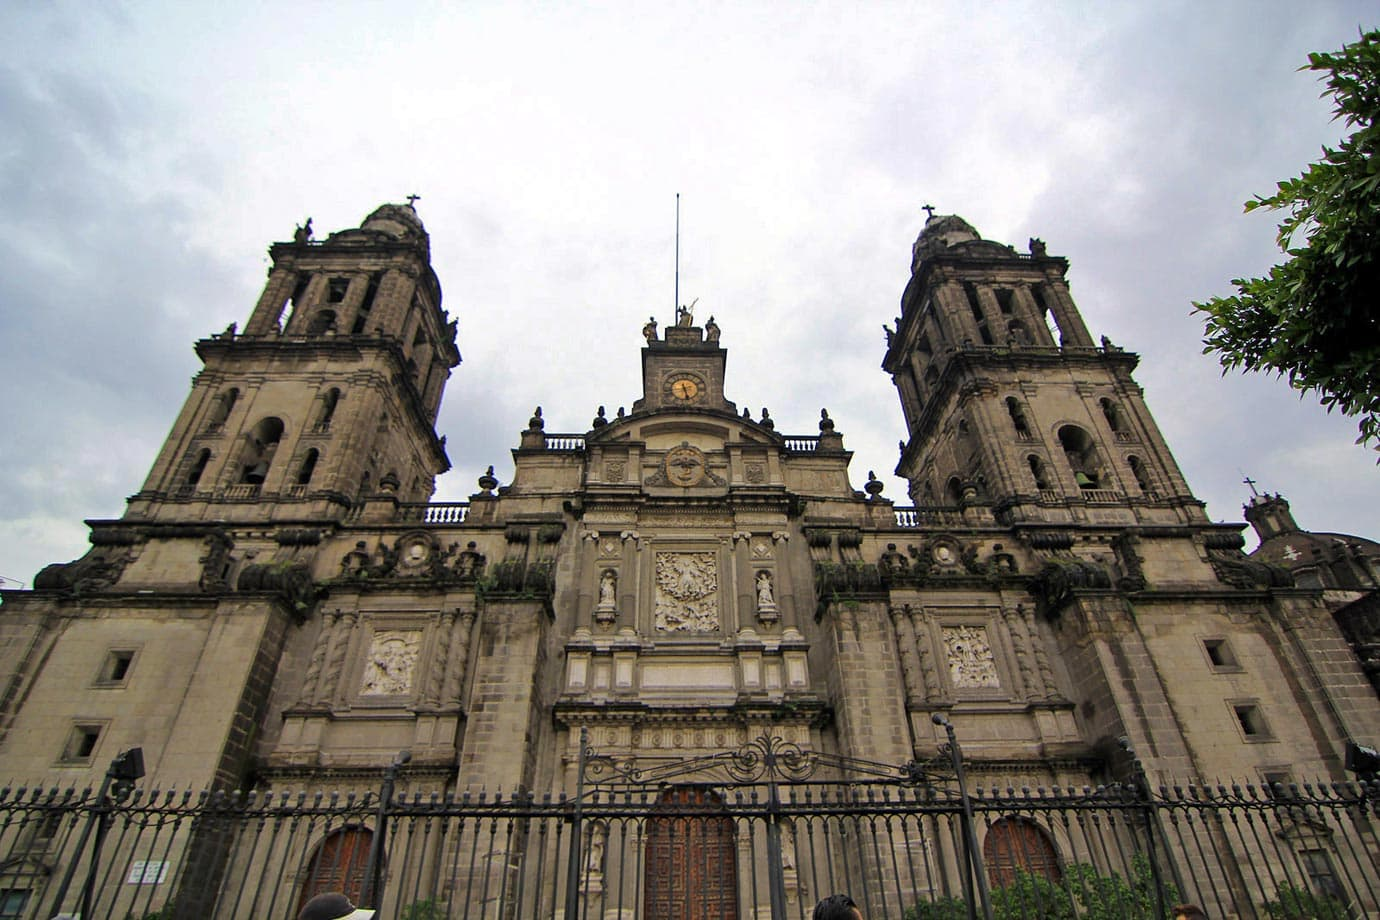 Mexico City Metropolitan Cathedral in the middle of the Zocalo, the central plaza